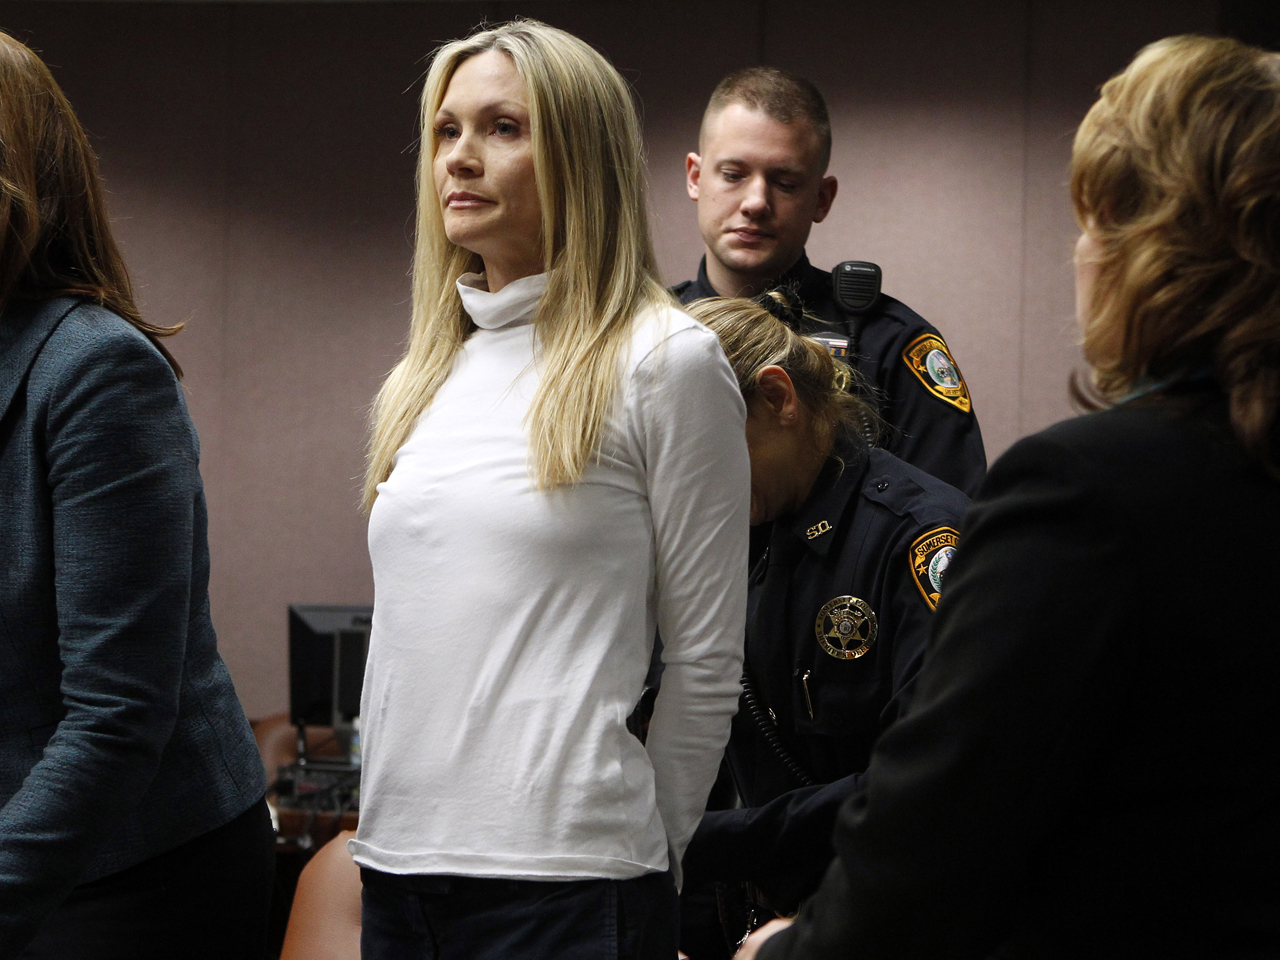 Durga matha photos download Mens Fashion 2018 - Latest Mens Fashion Trends - Esquire